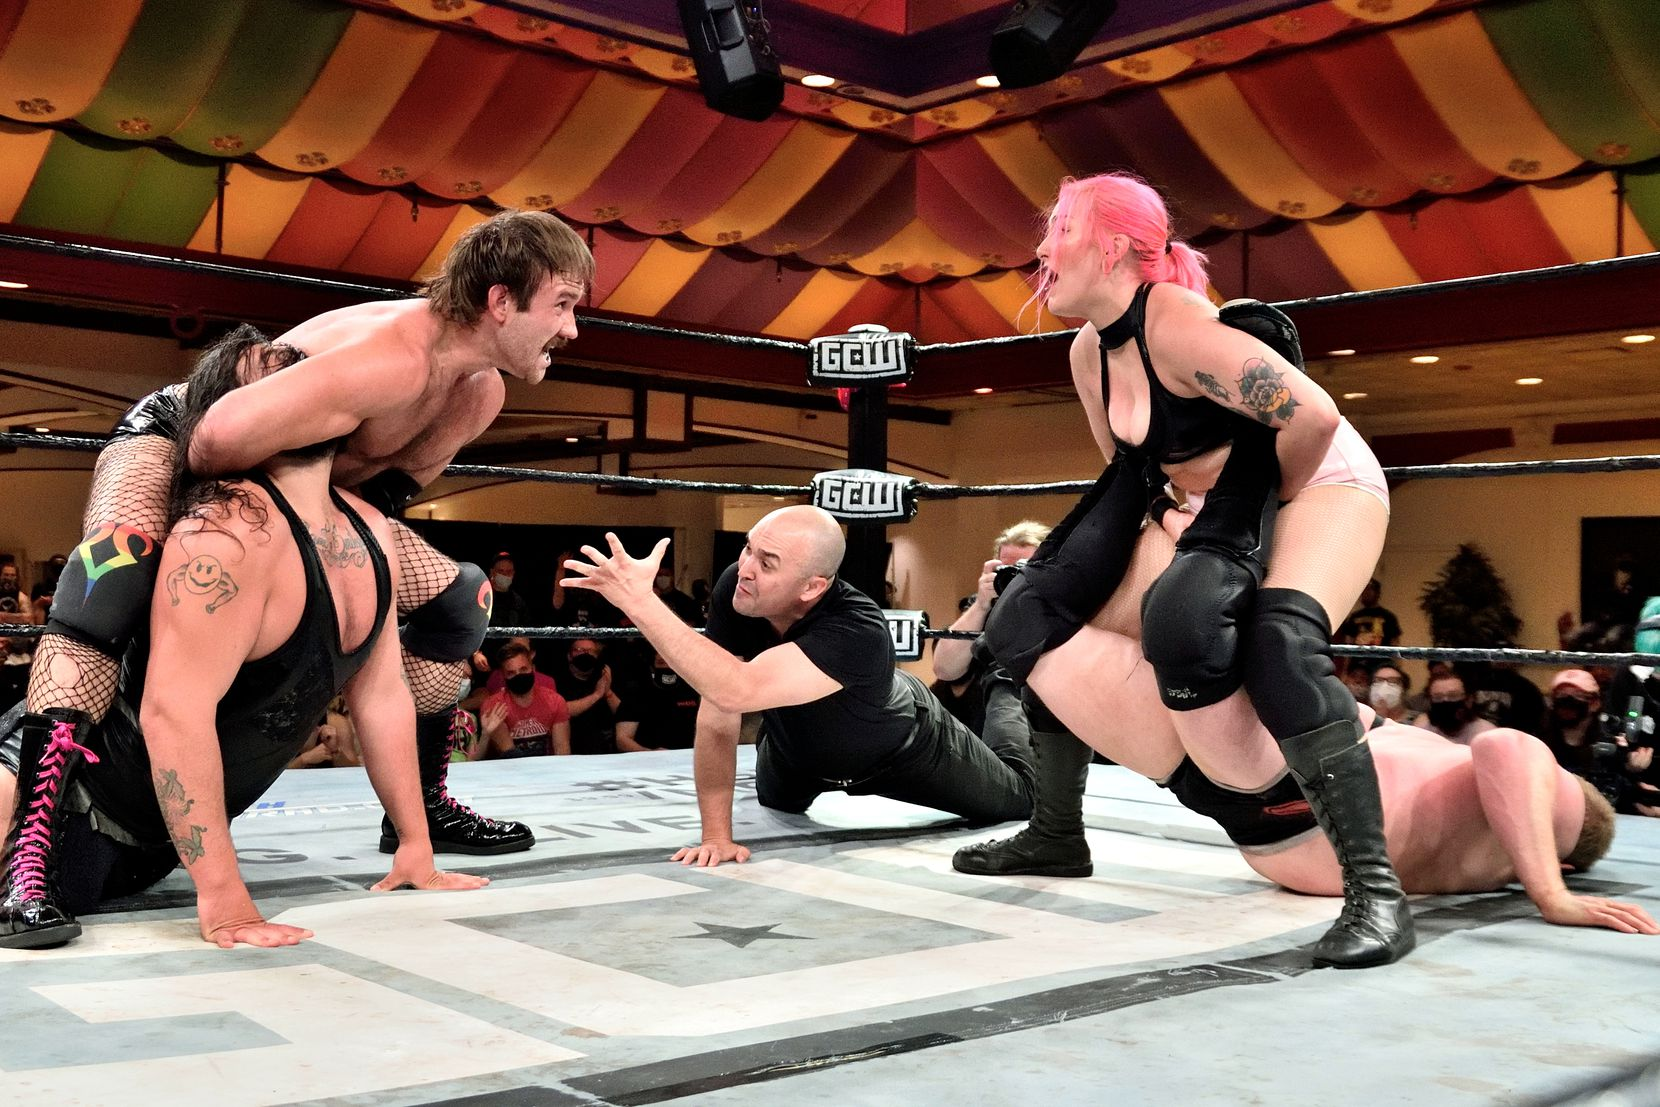 """Professional wrestlers Taylor """"Effy"""" Gibson (left) and Allison """"Allie Katch"""" Woodard (right) apply submission holds to their opponents during a match. (Courtesy: GCW)"""